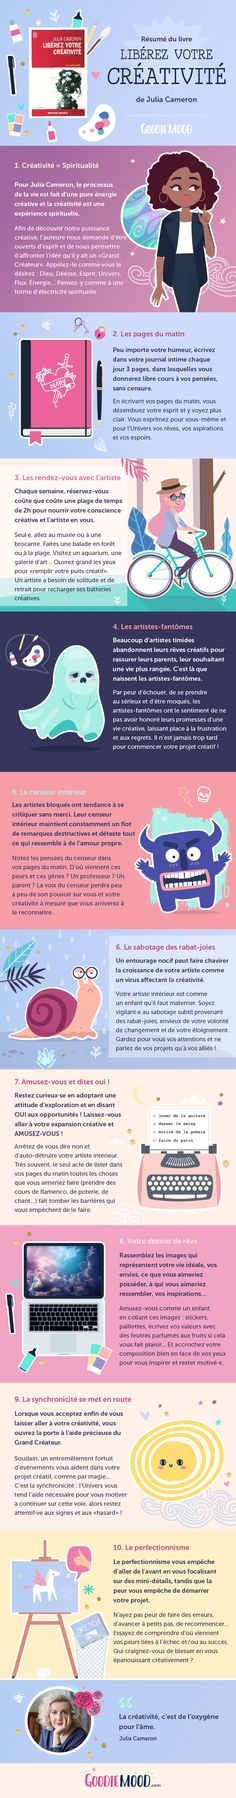 """Goodie mood - Summary of the book """"Unleash your creativity"""" by Julia Cameron – Illustrated infographic presenti - Positive Attitude, Positive Life, Julia Cameron, The Artist's Way, Miracle Morning, Thing 1, Sexy Girl, Mood, Inbound Marketing"""